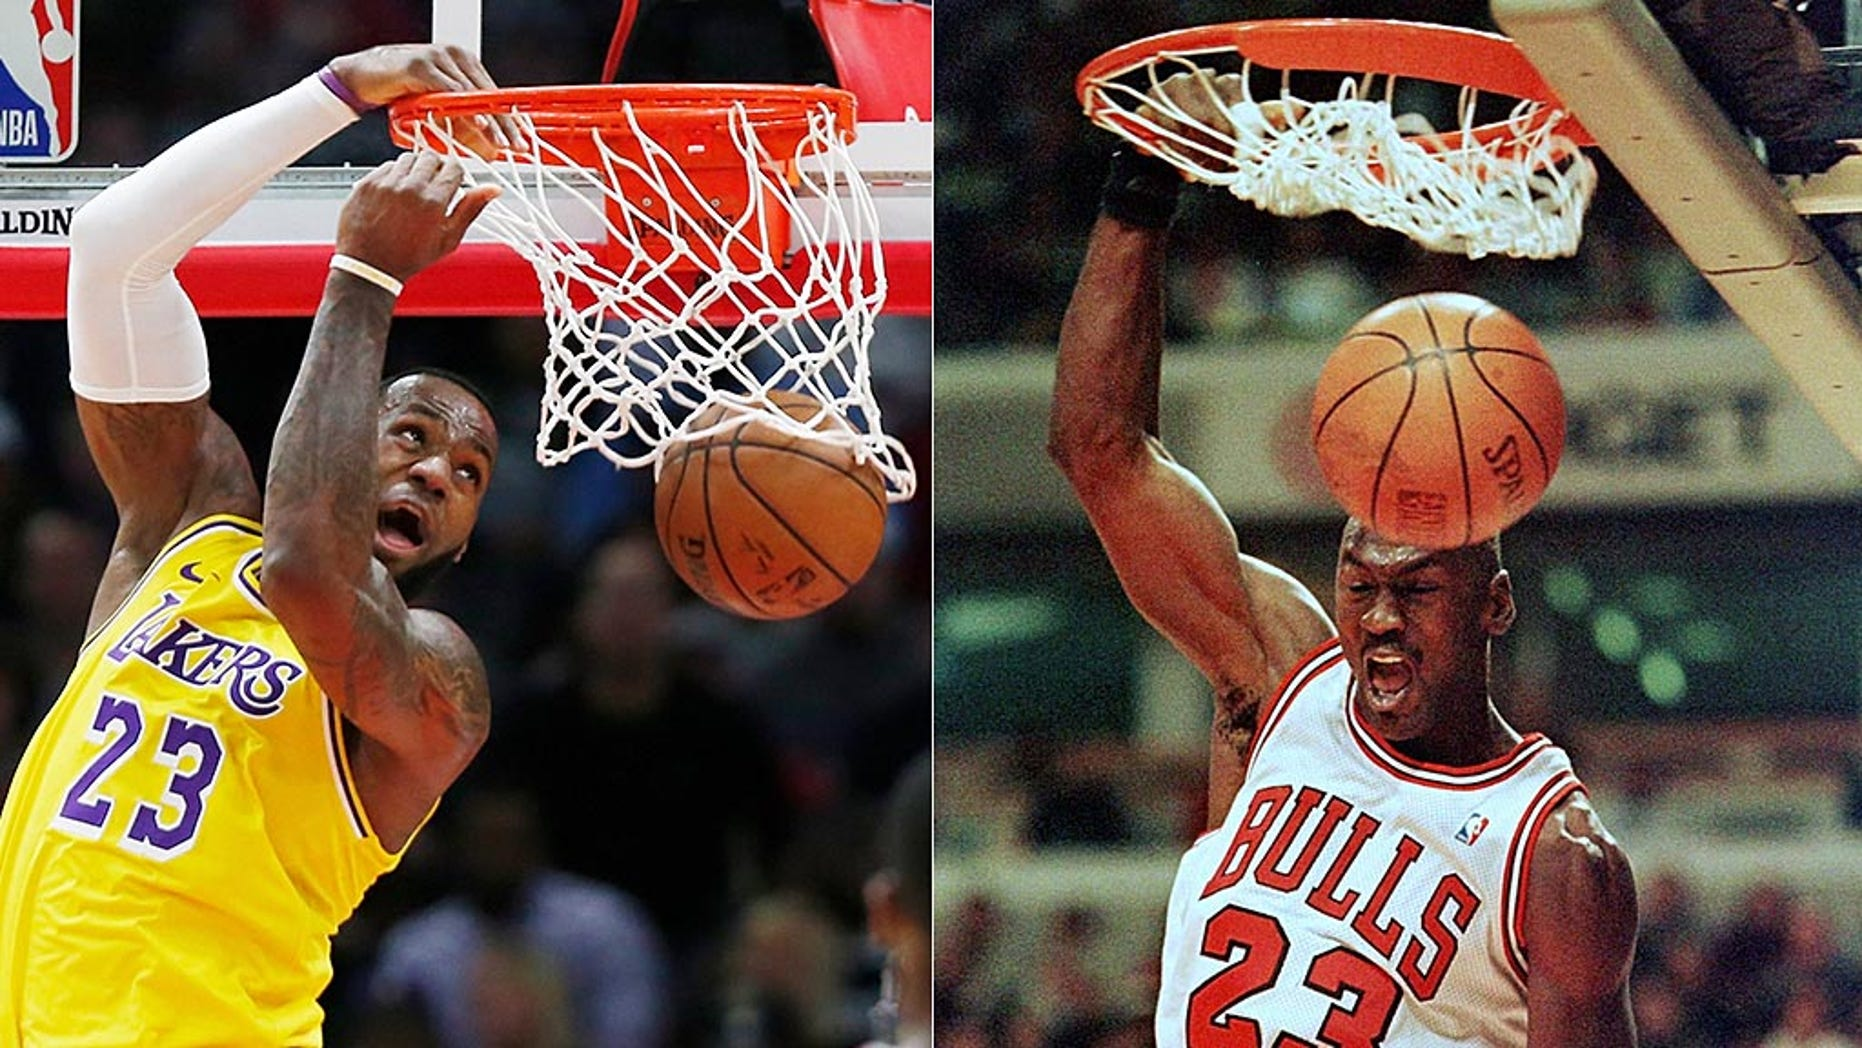 a90f30835e28 Basketball fans have voted on who is the best ever -- Michael Jordan or  LeBron